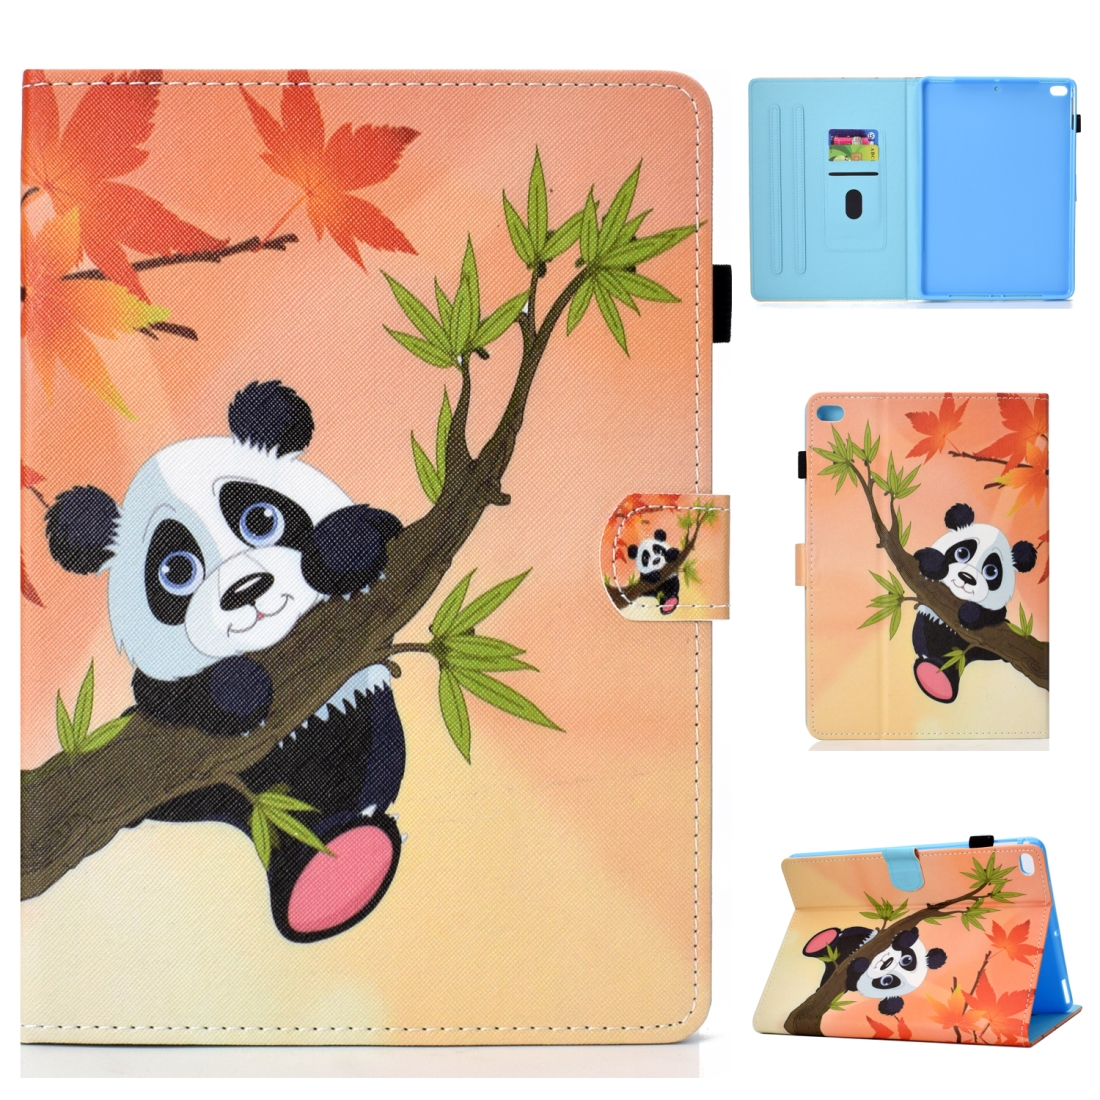 Case For iPad 5/ 6/ 8 Artistic Stitching Leather Case, with Sleeves (Panda)